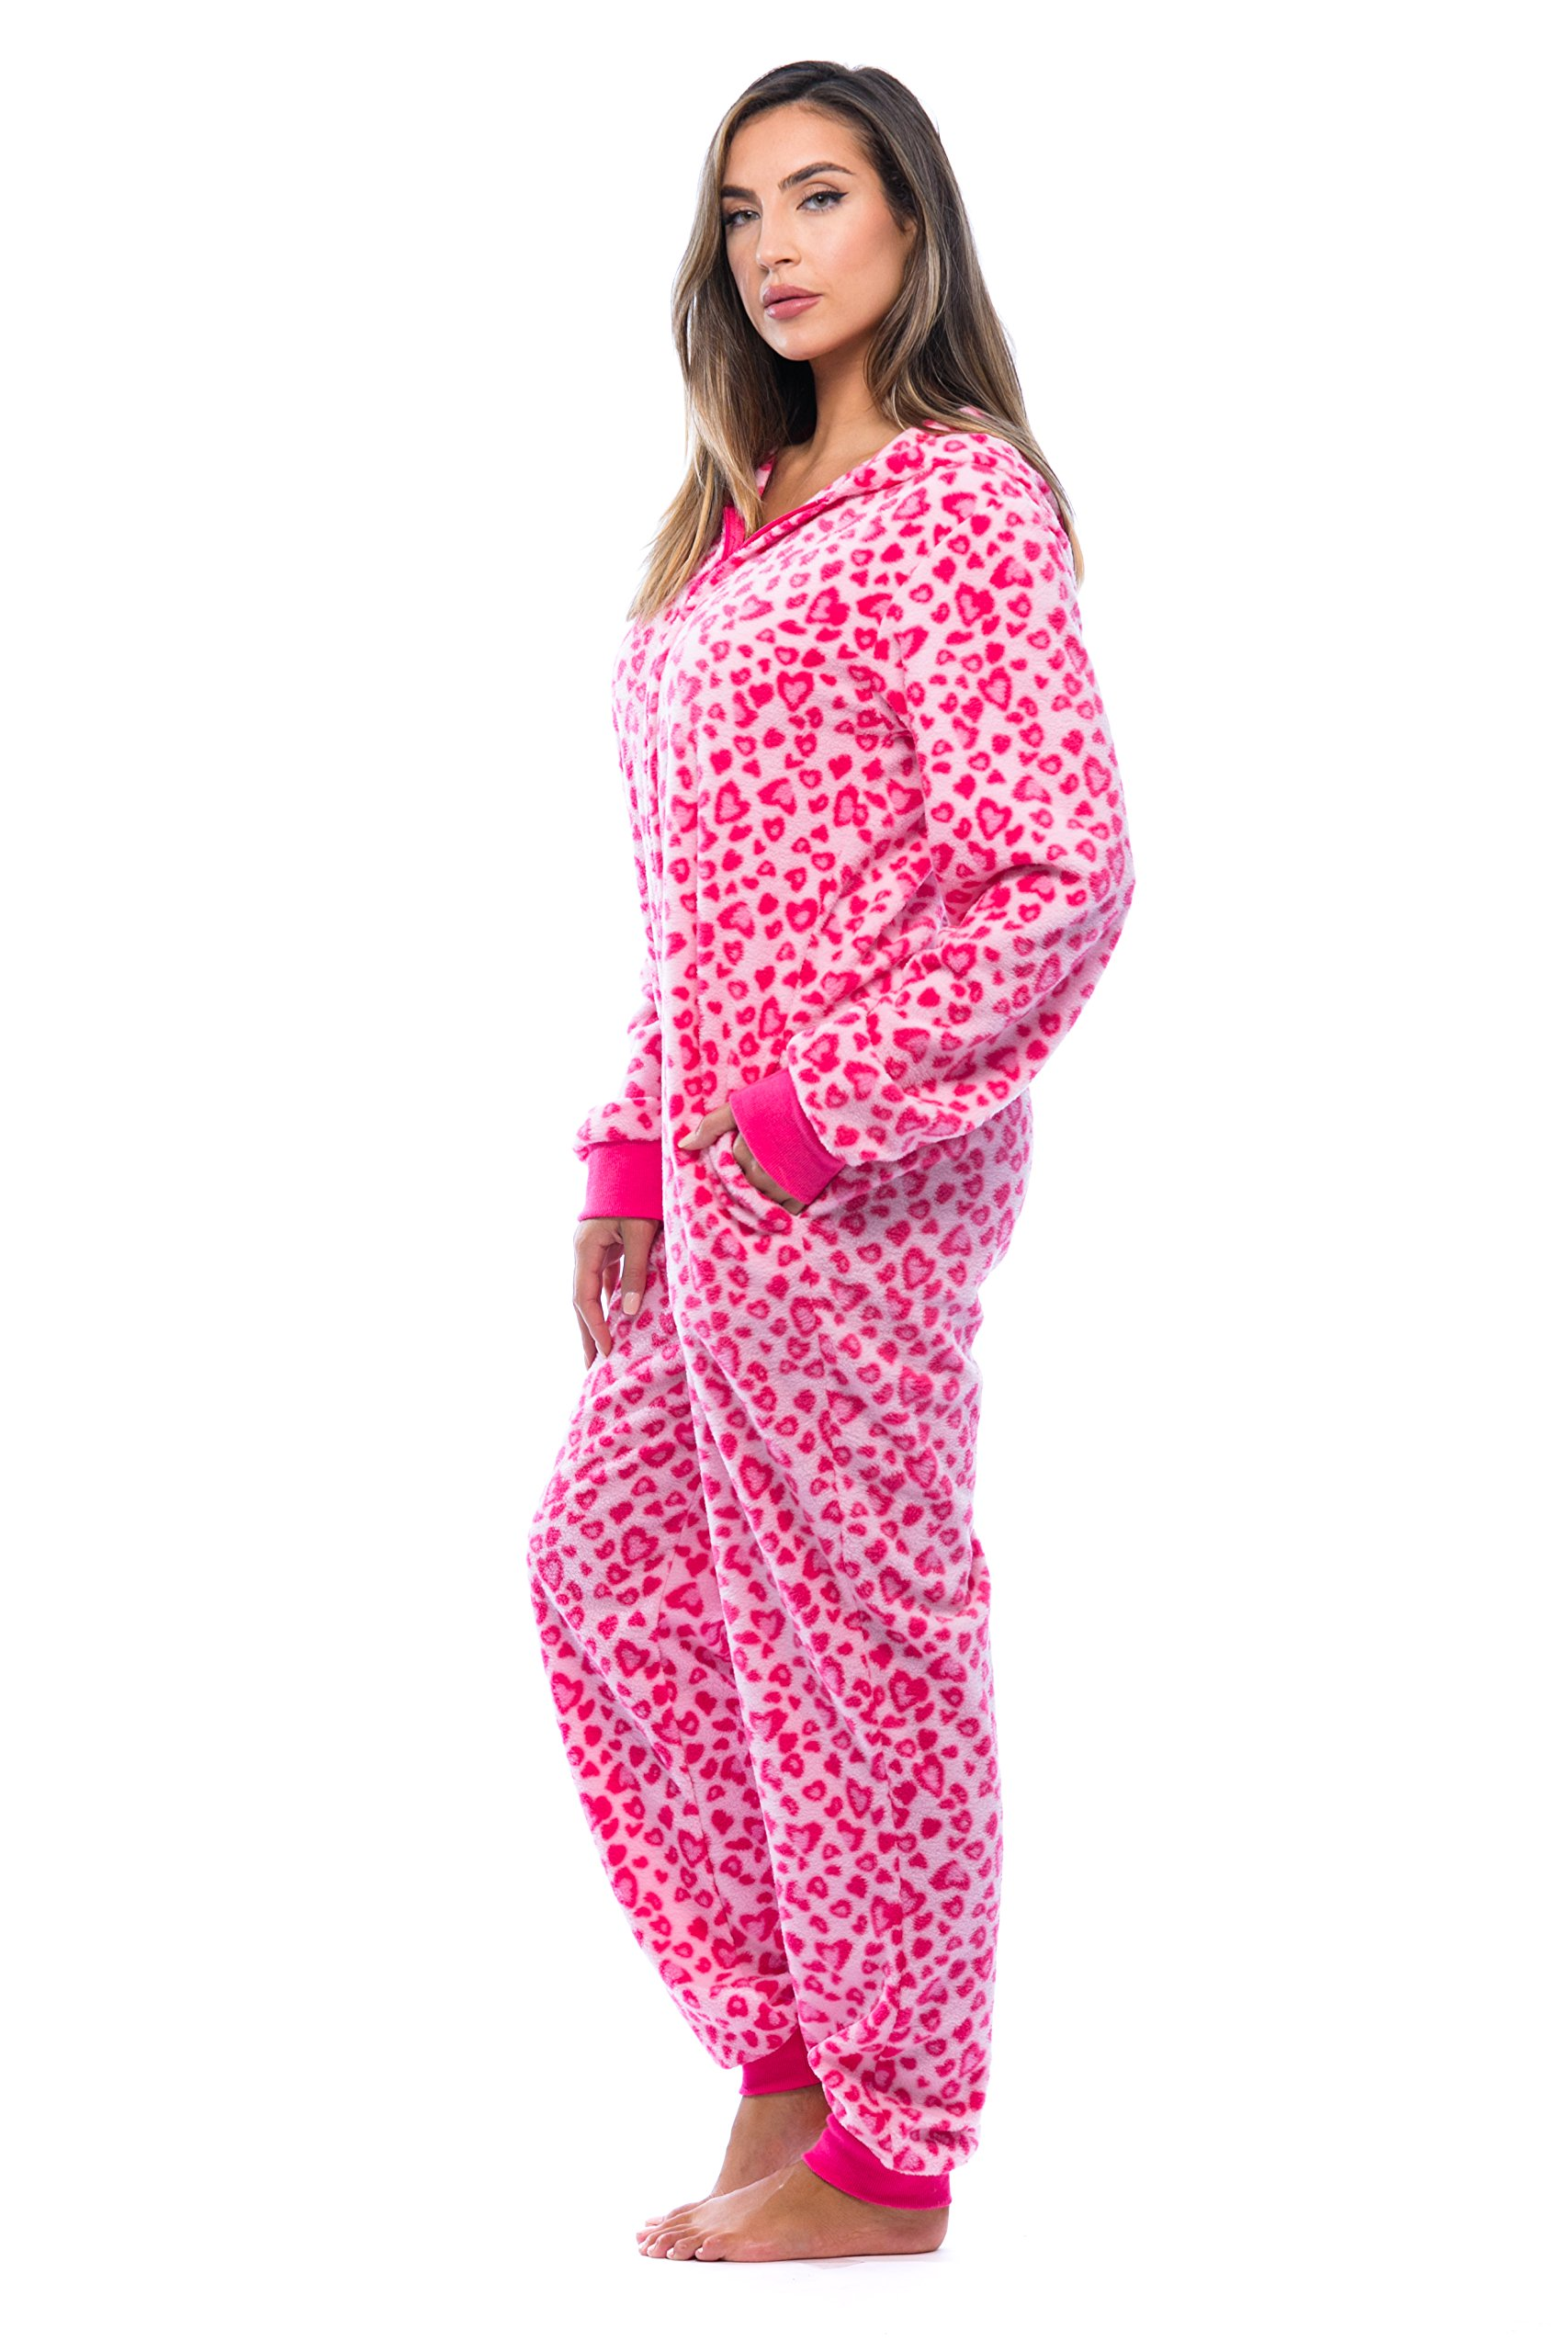 Just Love 6453-10215-M Adult Onesie With Animal Prints/Pajamas by Just Love (Image #2)